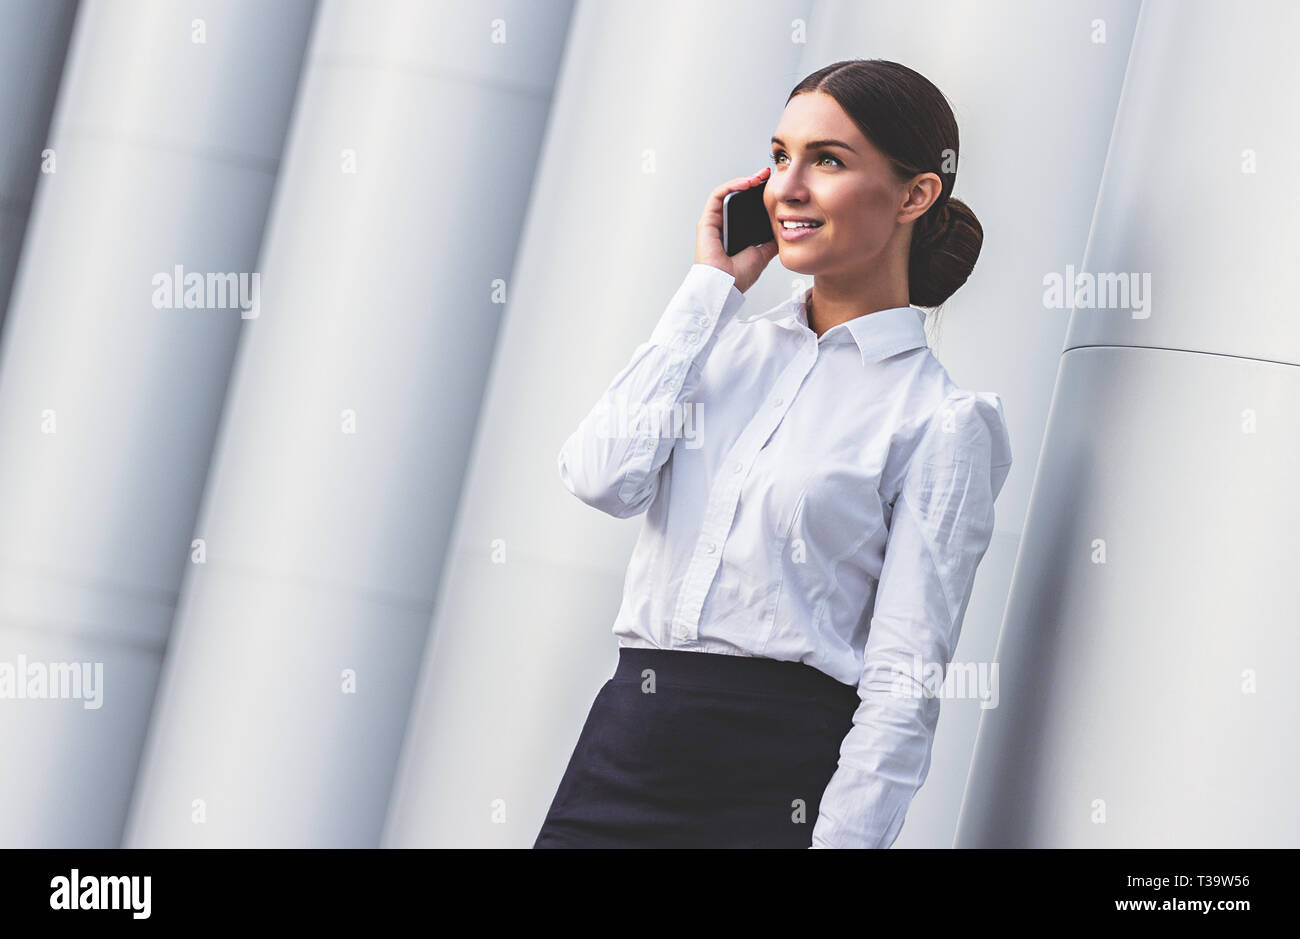 Sharing good news. Low-angle view of attractive and young business woman in formal wear talking on her smart phone and smiling while standing outdoors - Stock Image